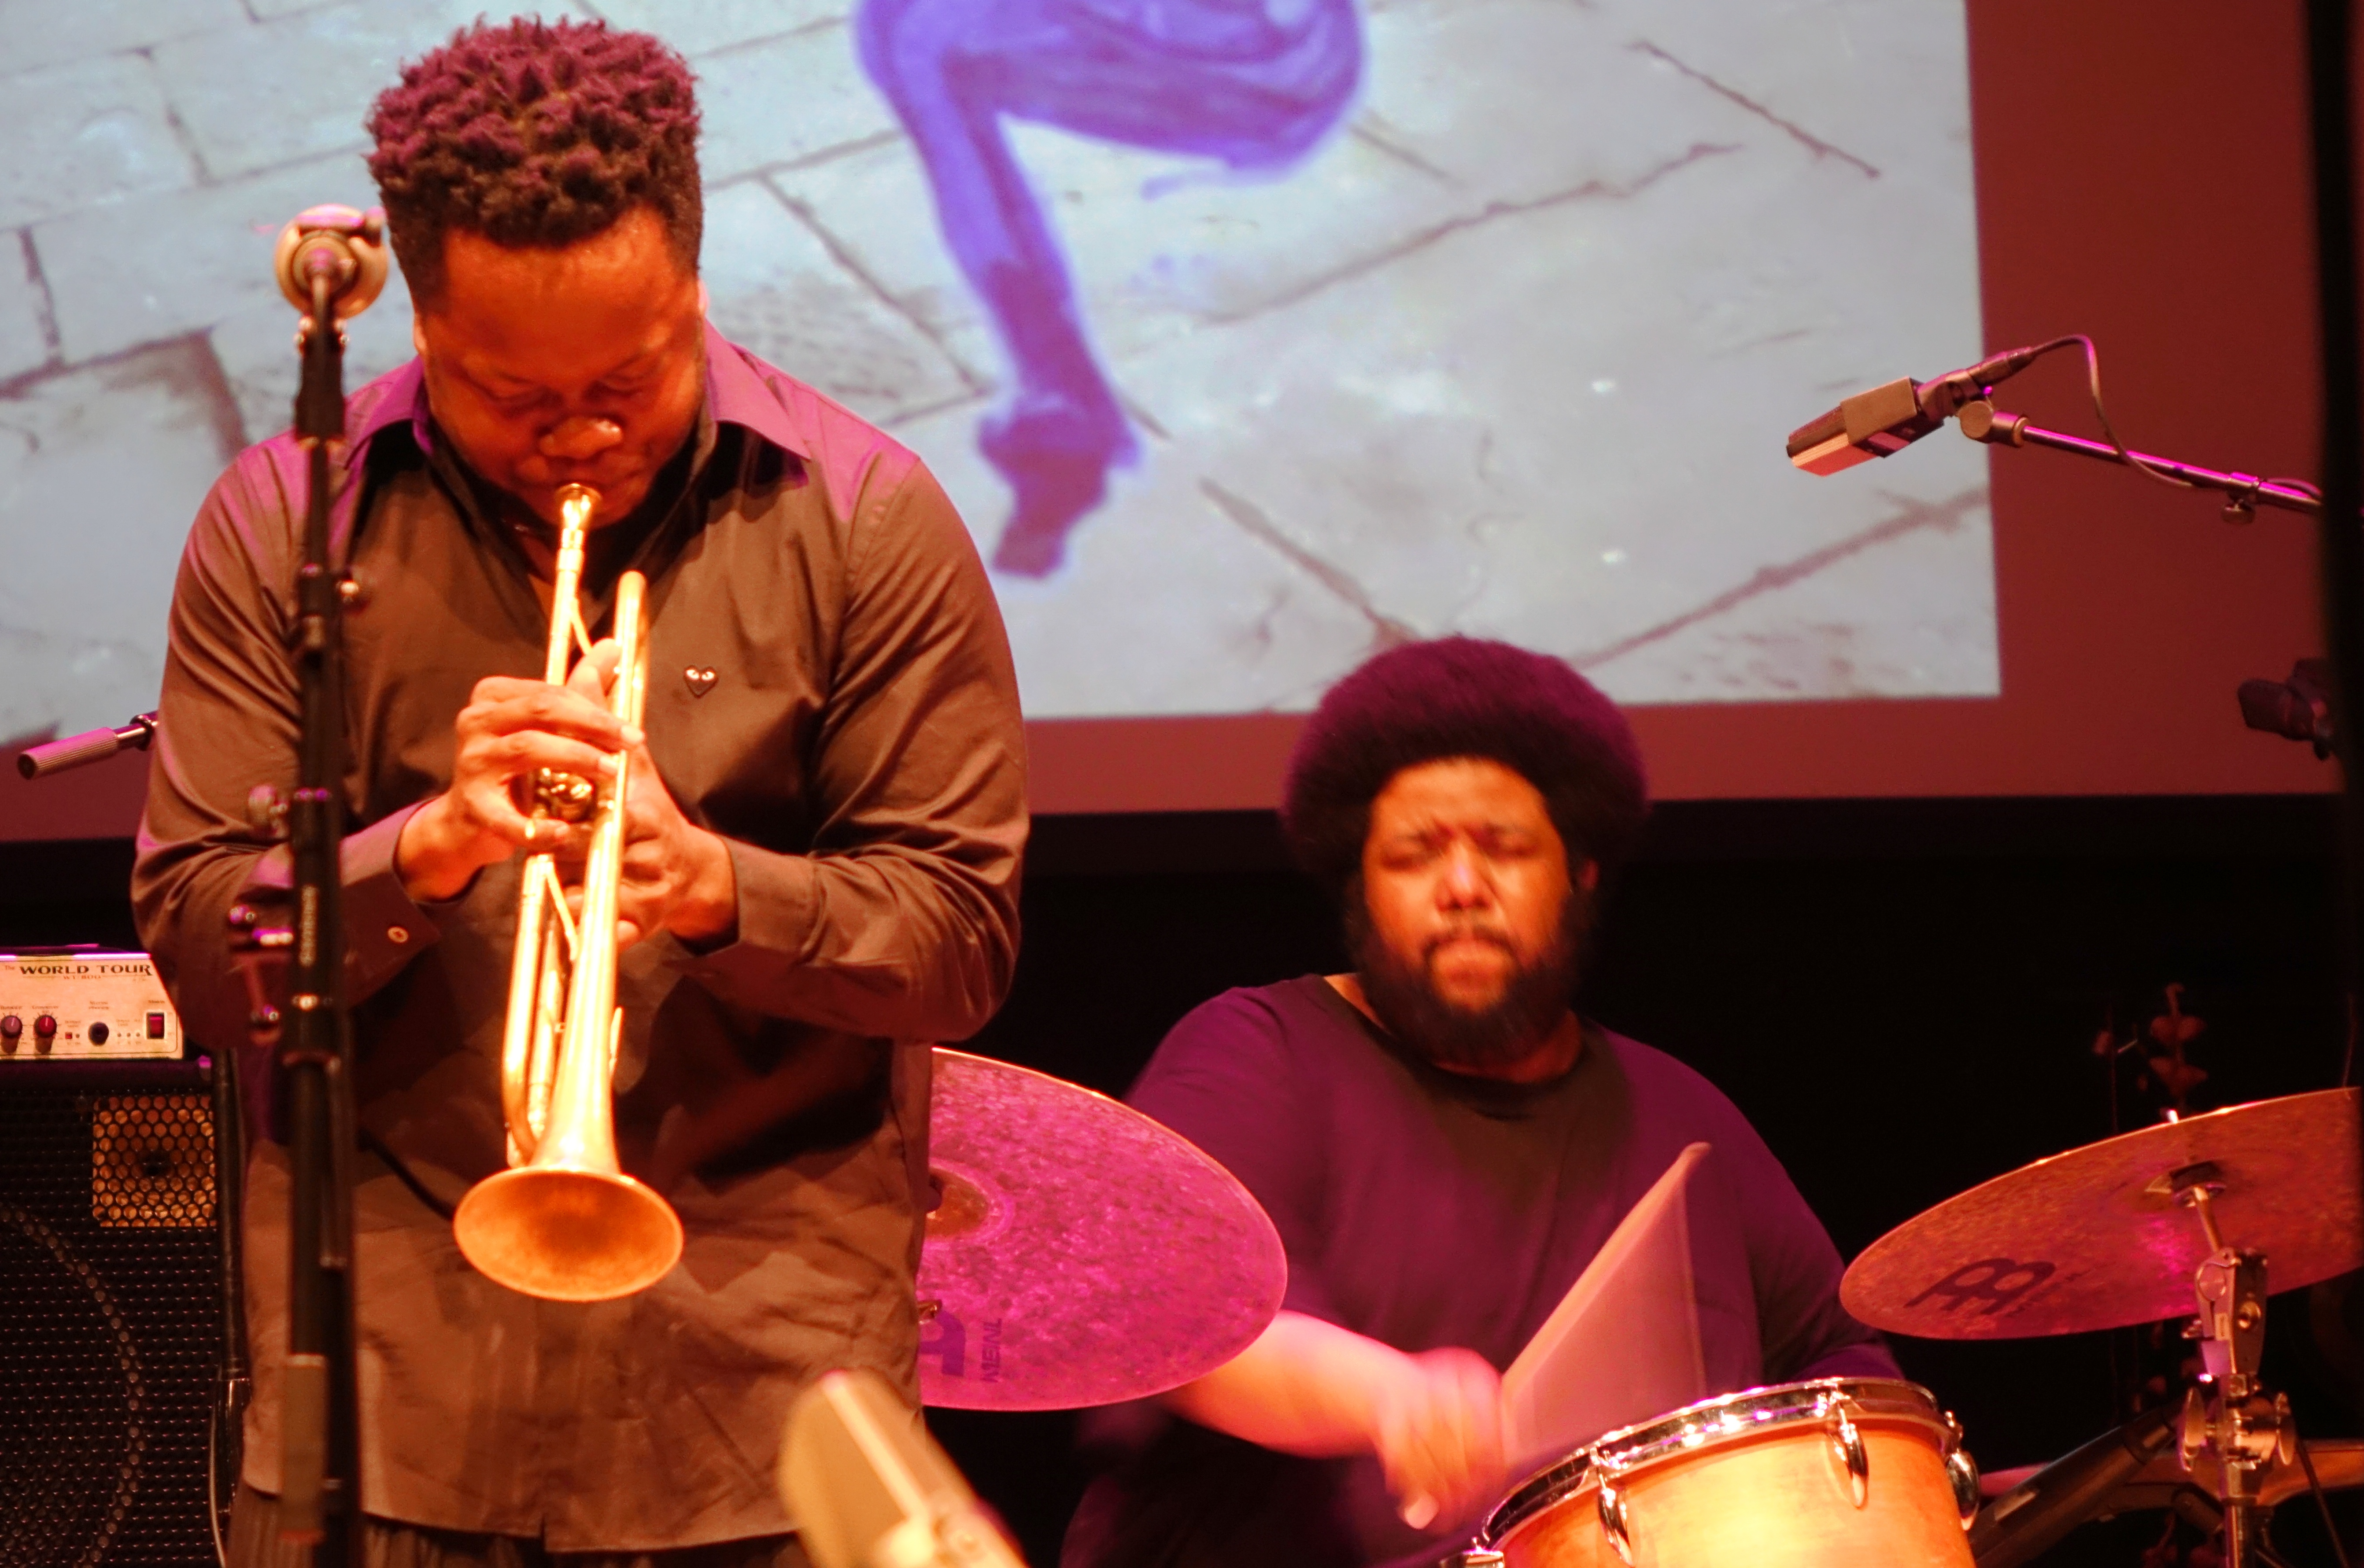 Ambrose Akinmusire and Tyshawn Sorey at the Vision Festival at Roulette, Brooklyn in May 2018